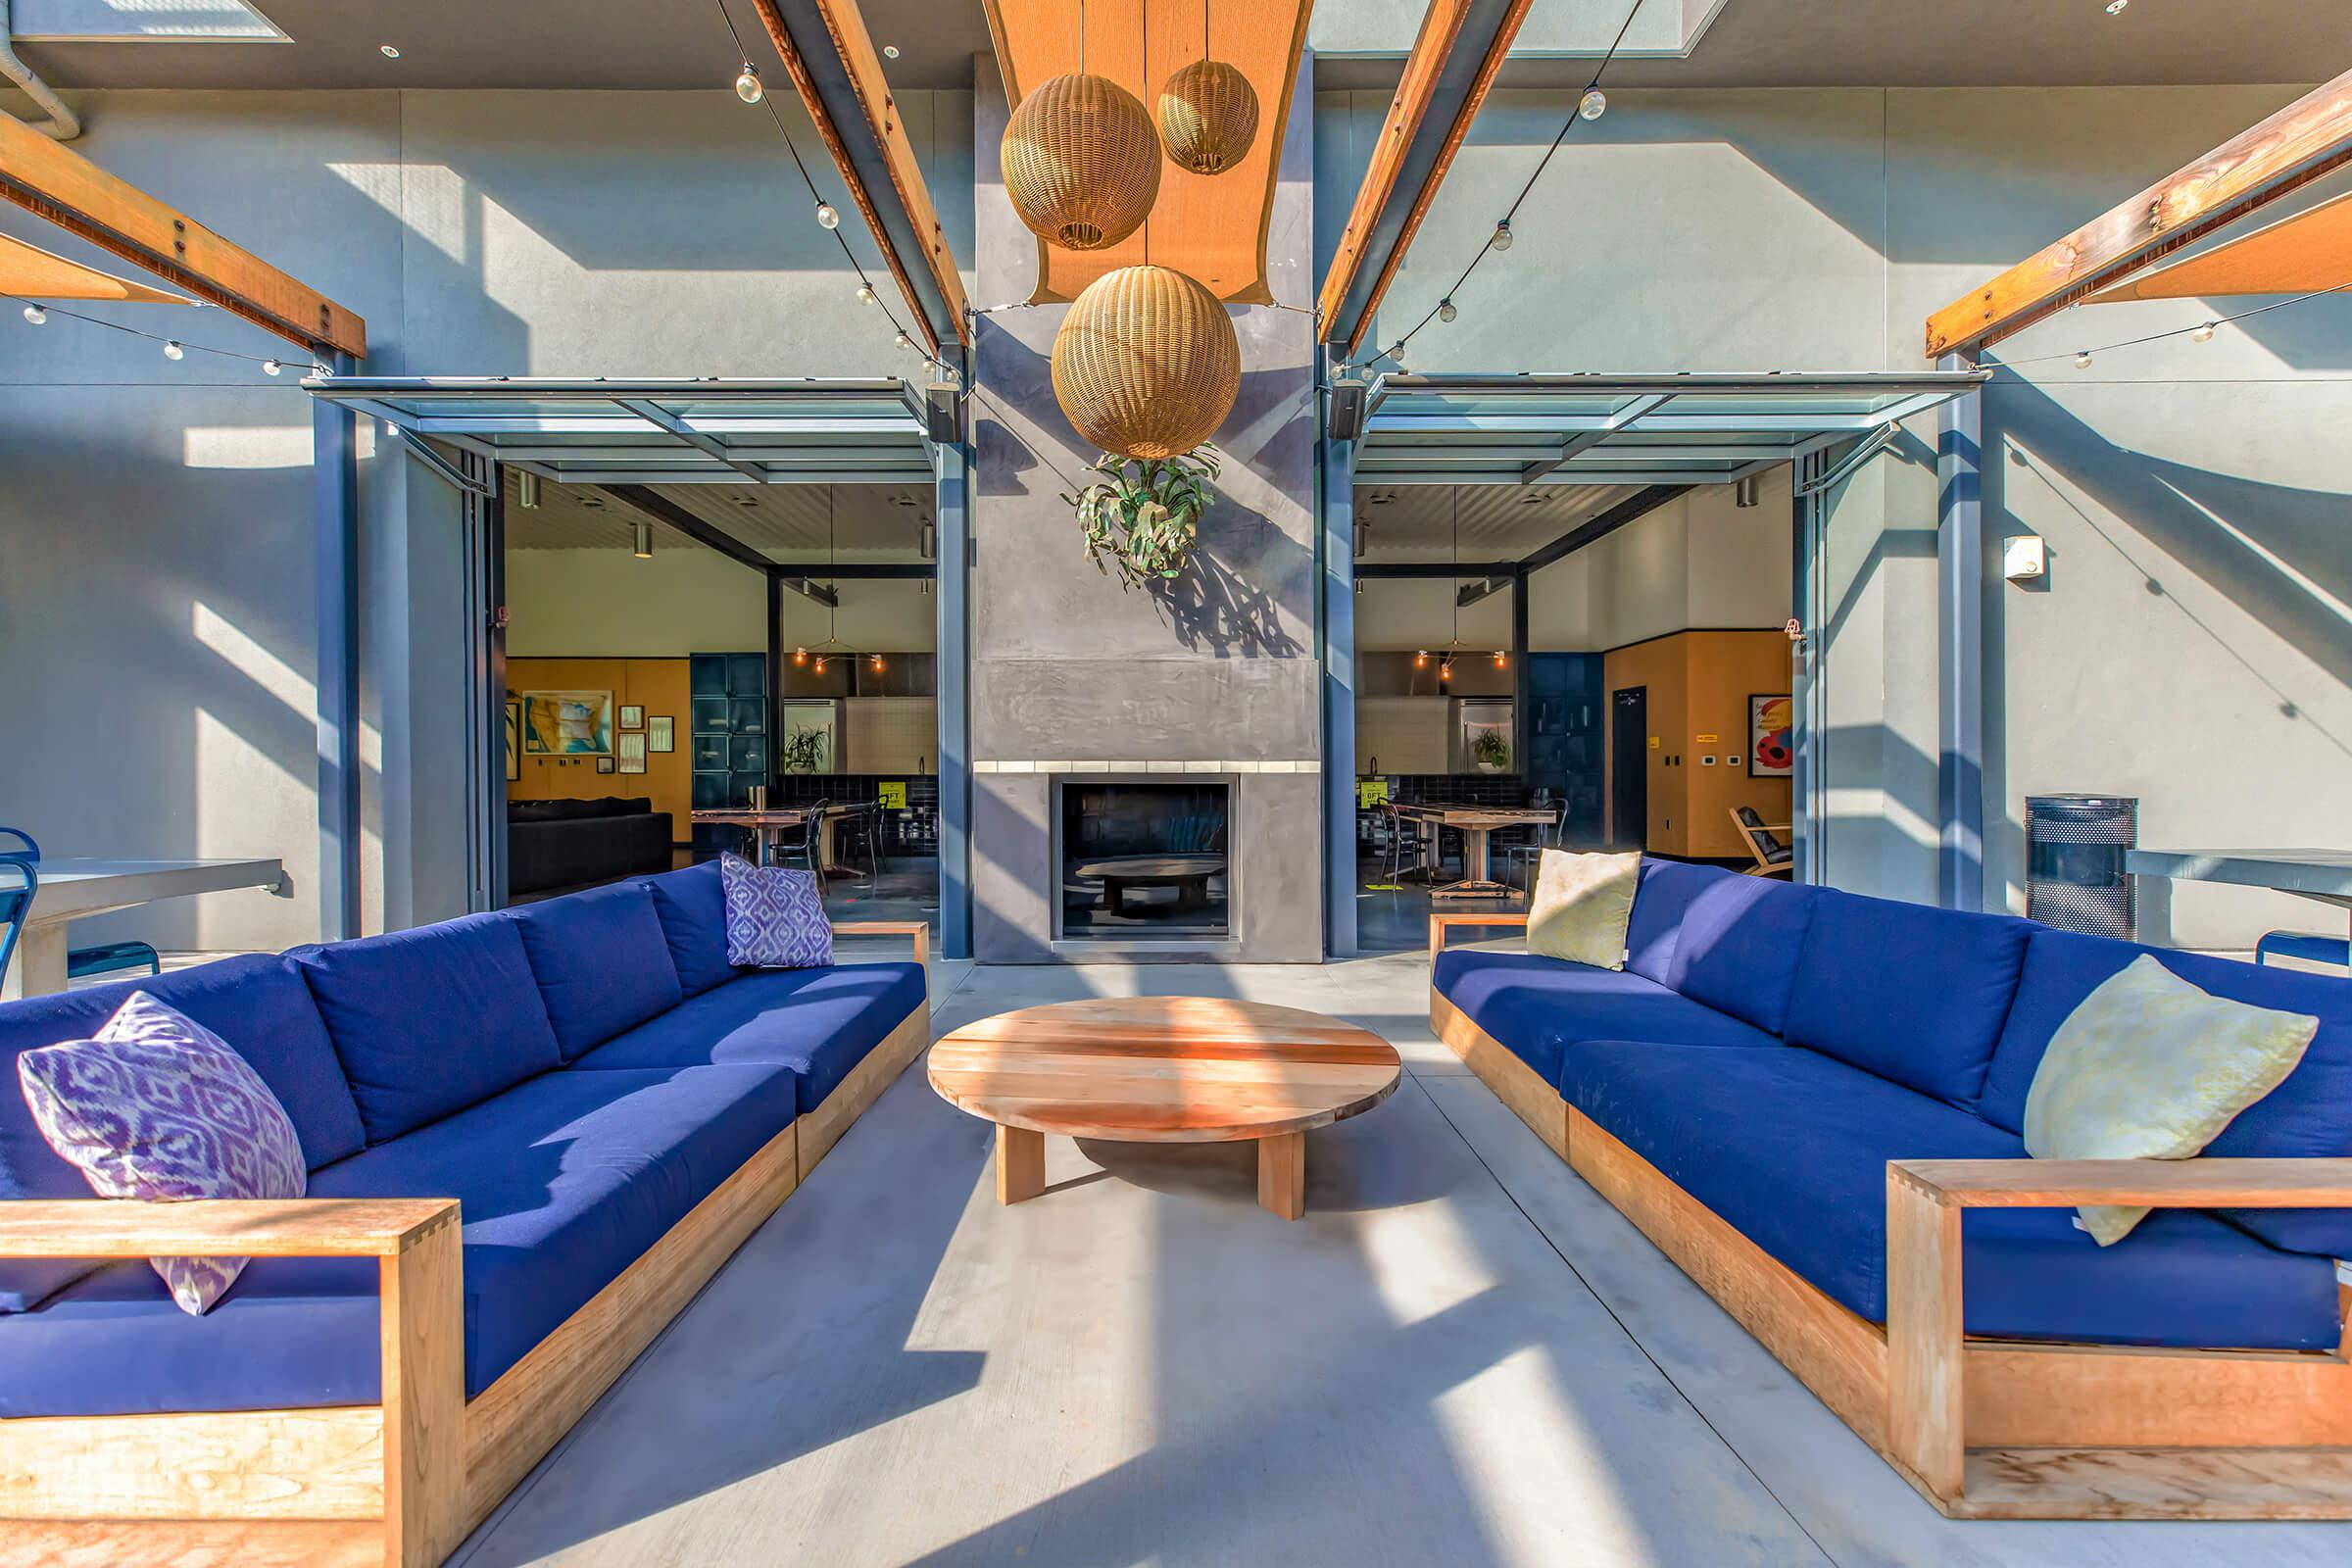 Outdoor seating area with blue couches